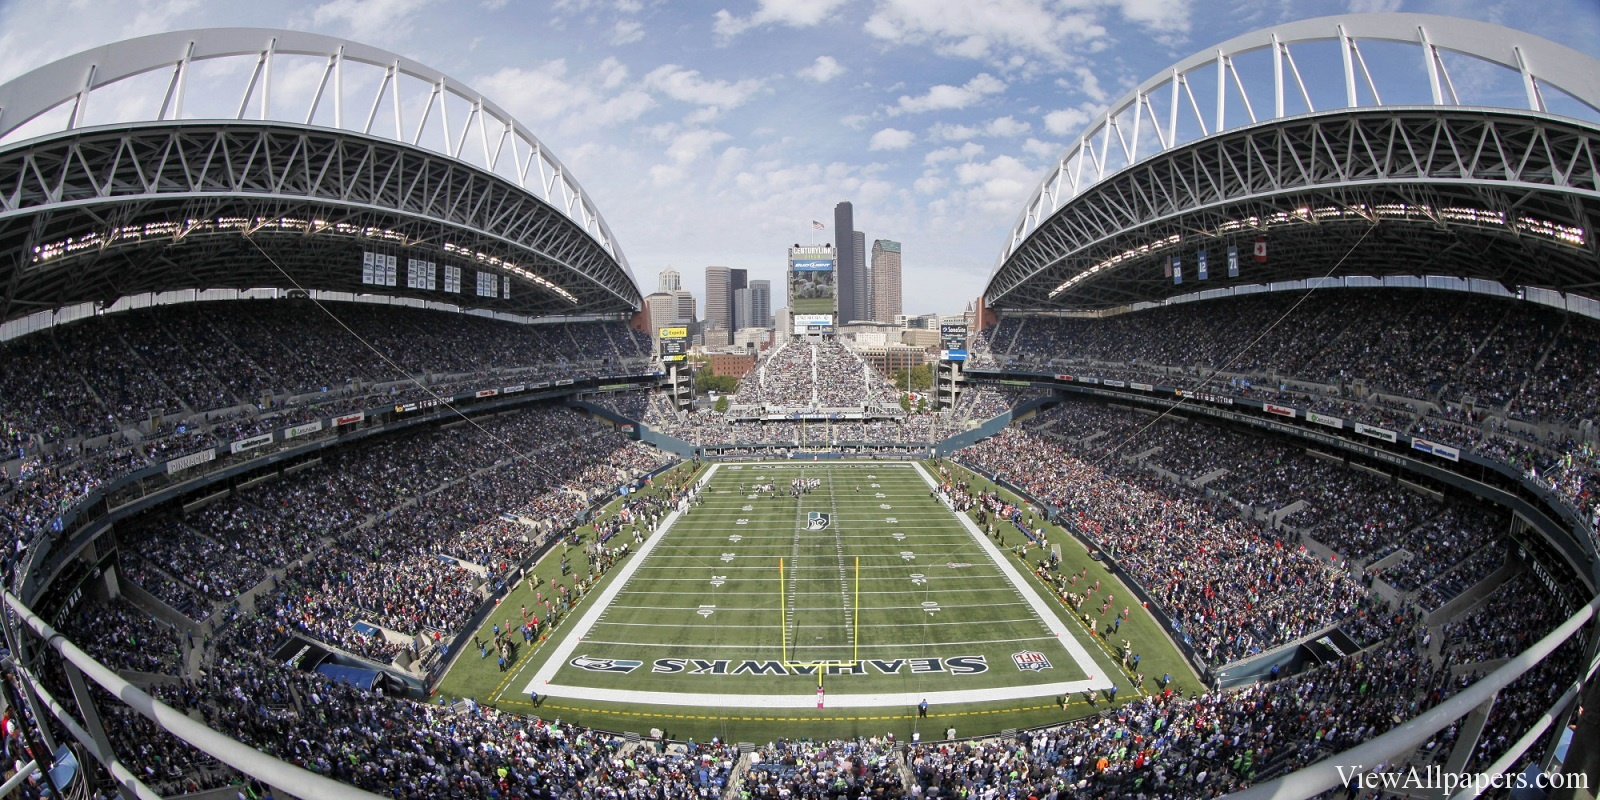 HD Resolution Wallpaper download Seattle Seahawks Stadium For PC 1600x800